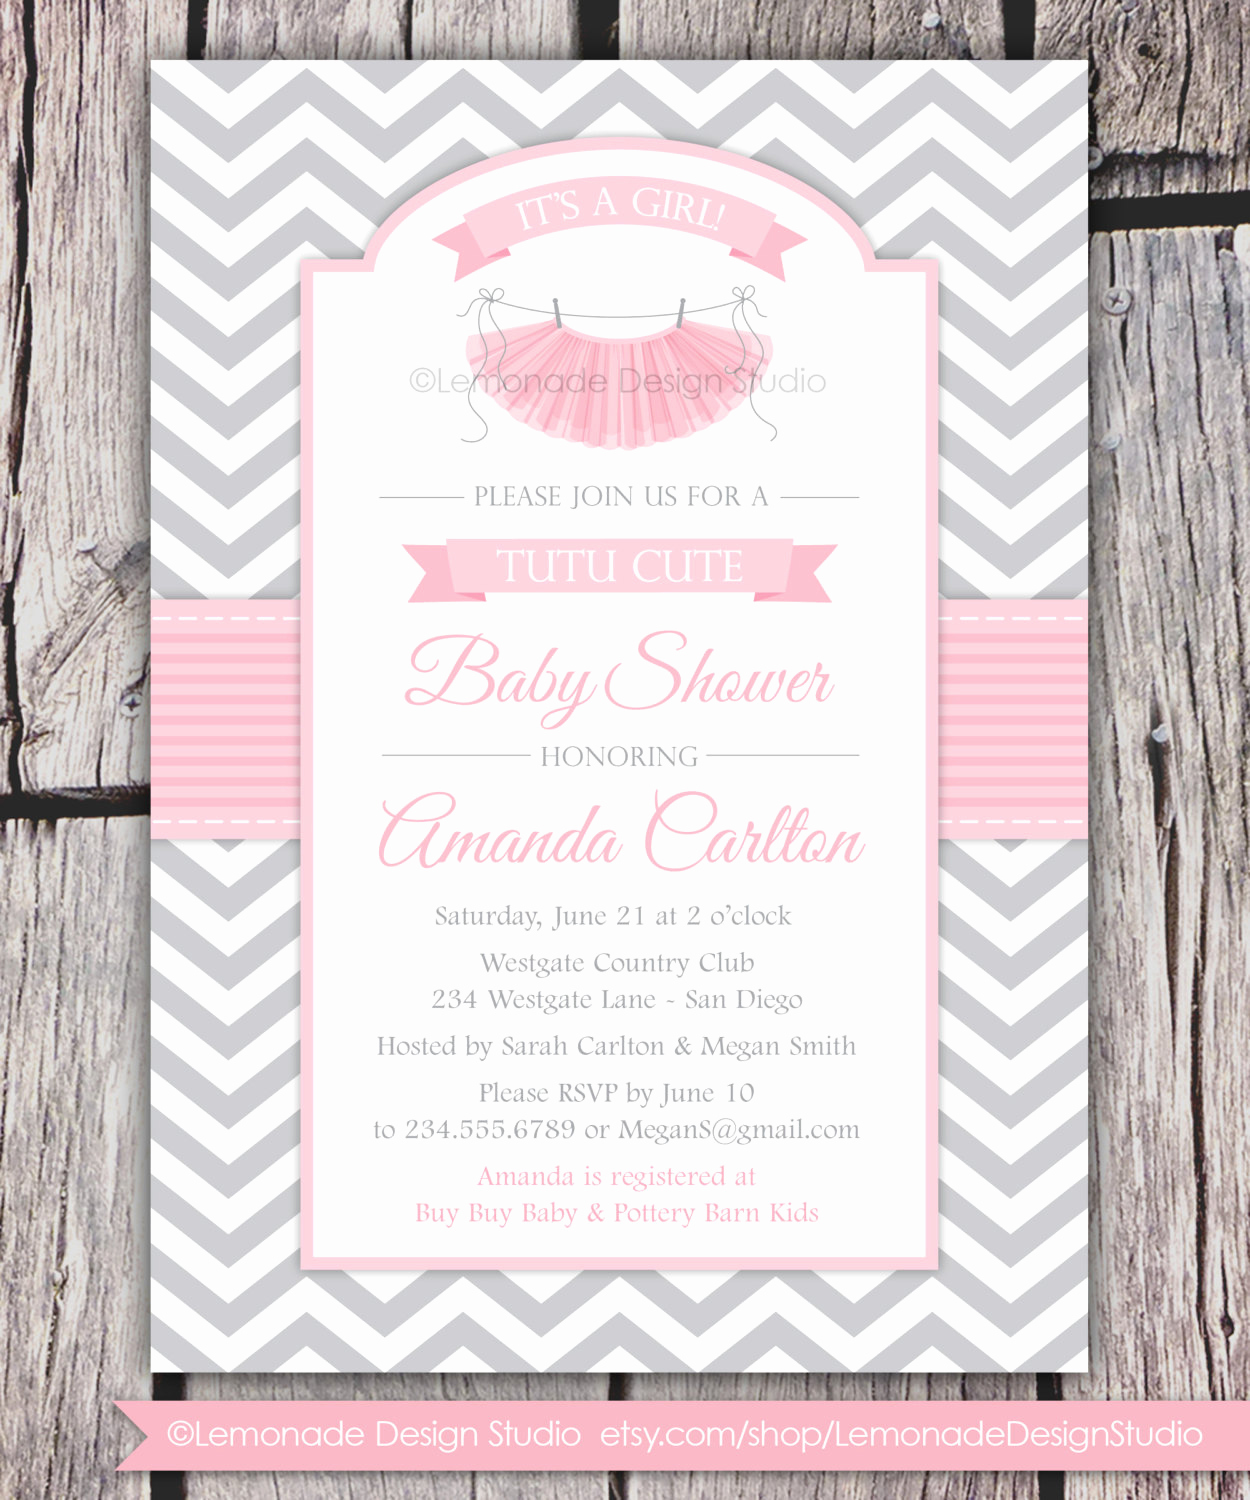 Tutu Baby Shower Invitation Fresh Tutu Cute Baby Shower Invitation Chevron Pink Grey Girl